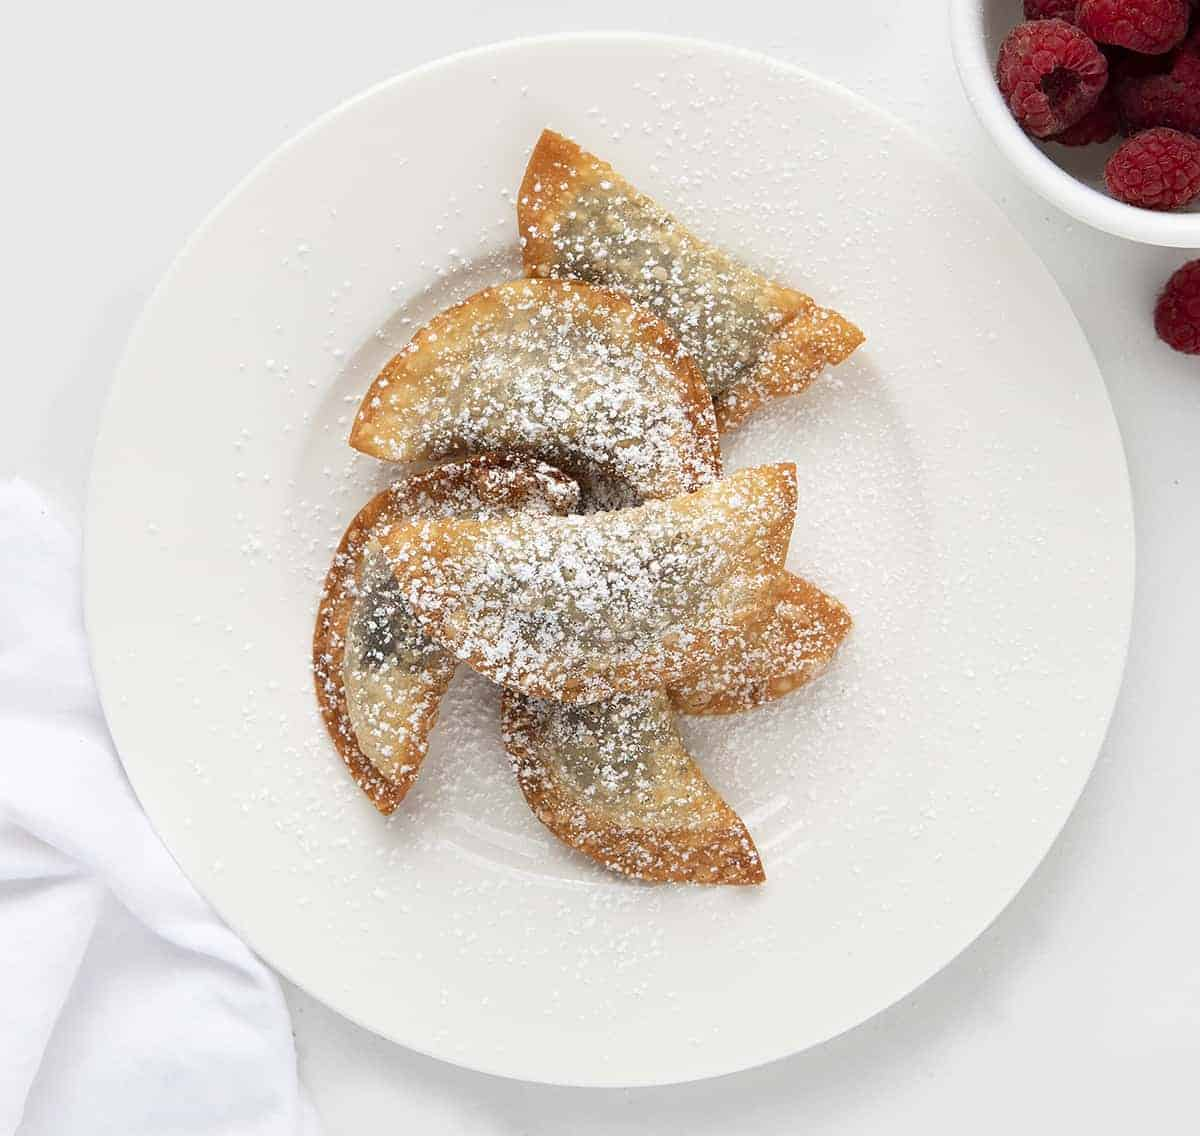 Deep Fried Oreo Wontons on a White Plate with Raspberries in Back